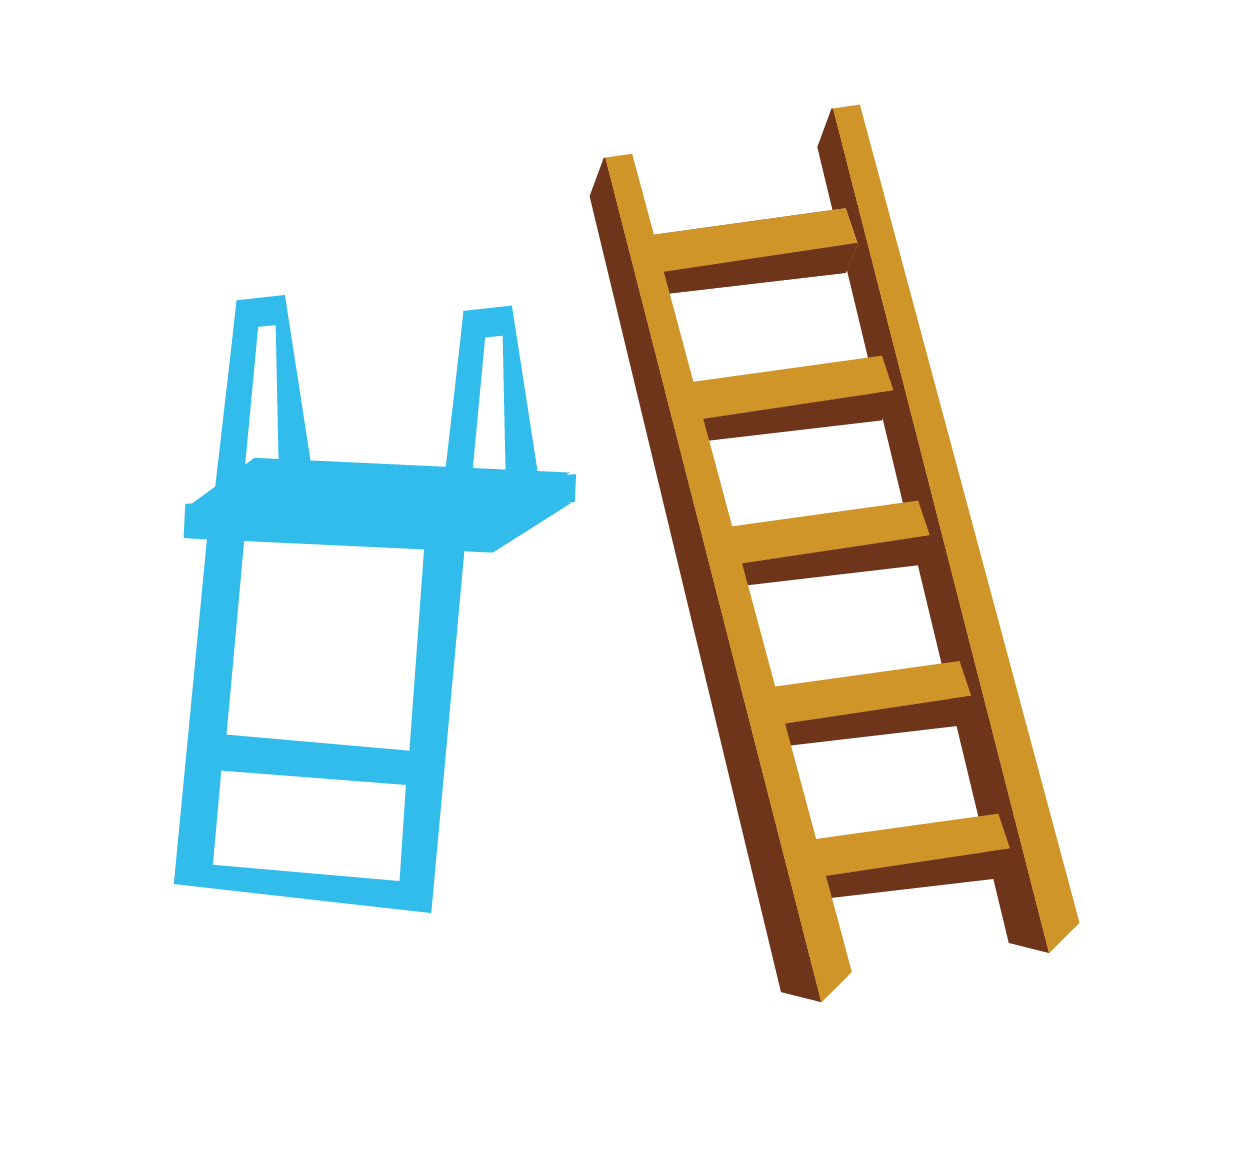 Stairs rope blue wooden. Ladder clipart wood ladder